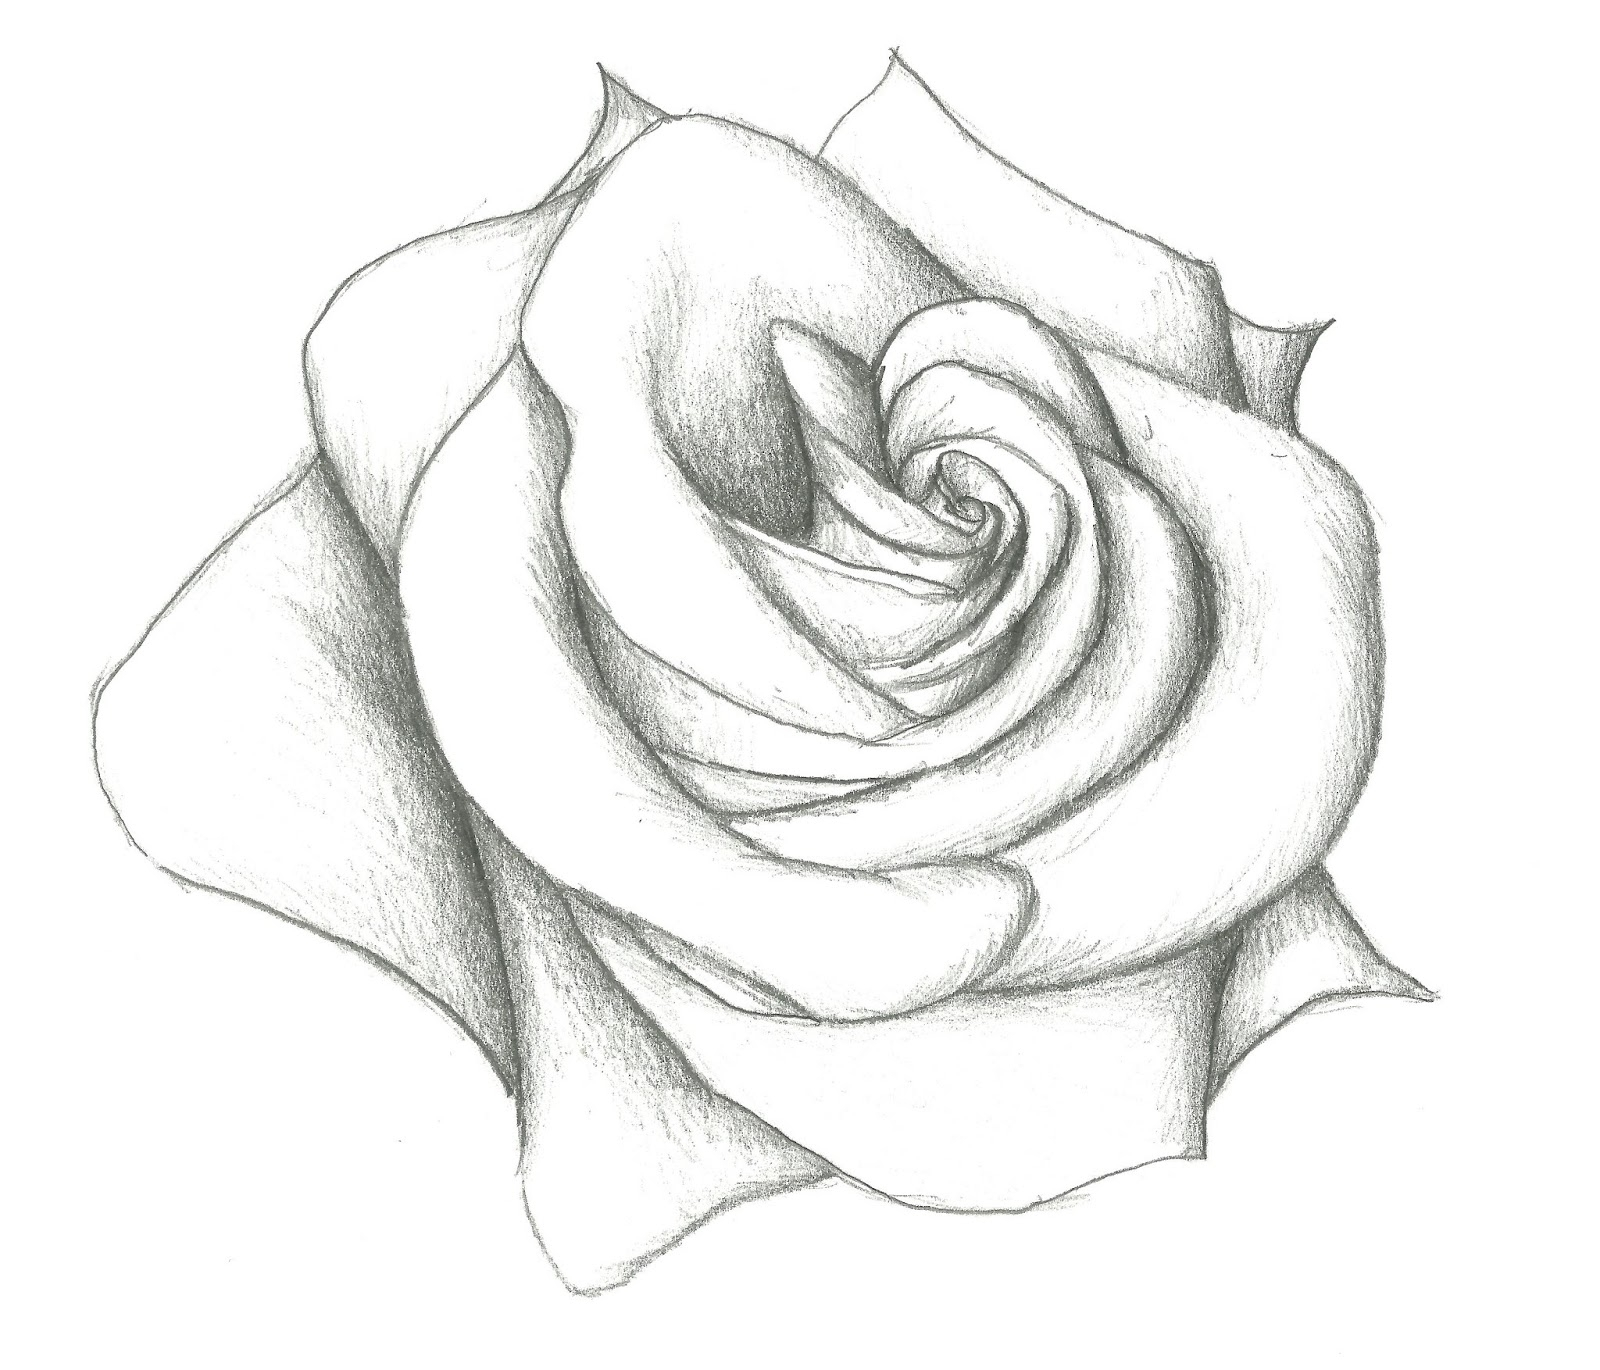 Rose Drawing at GetDrawings.com | Free for personal use Rose Drawing ...